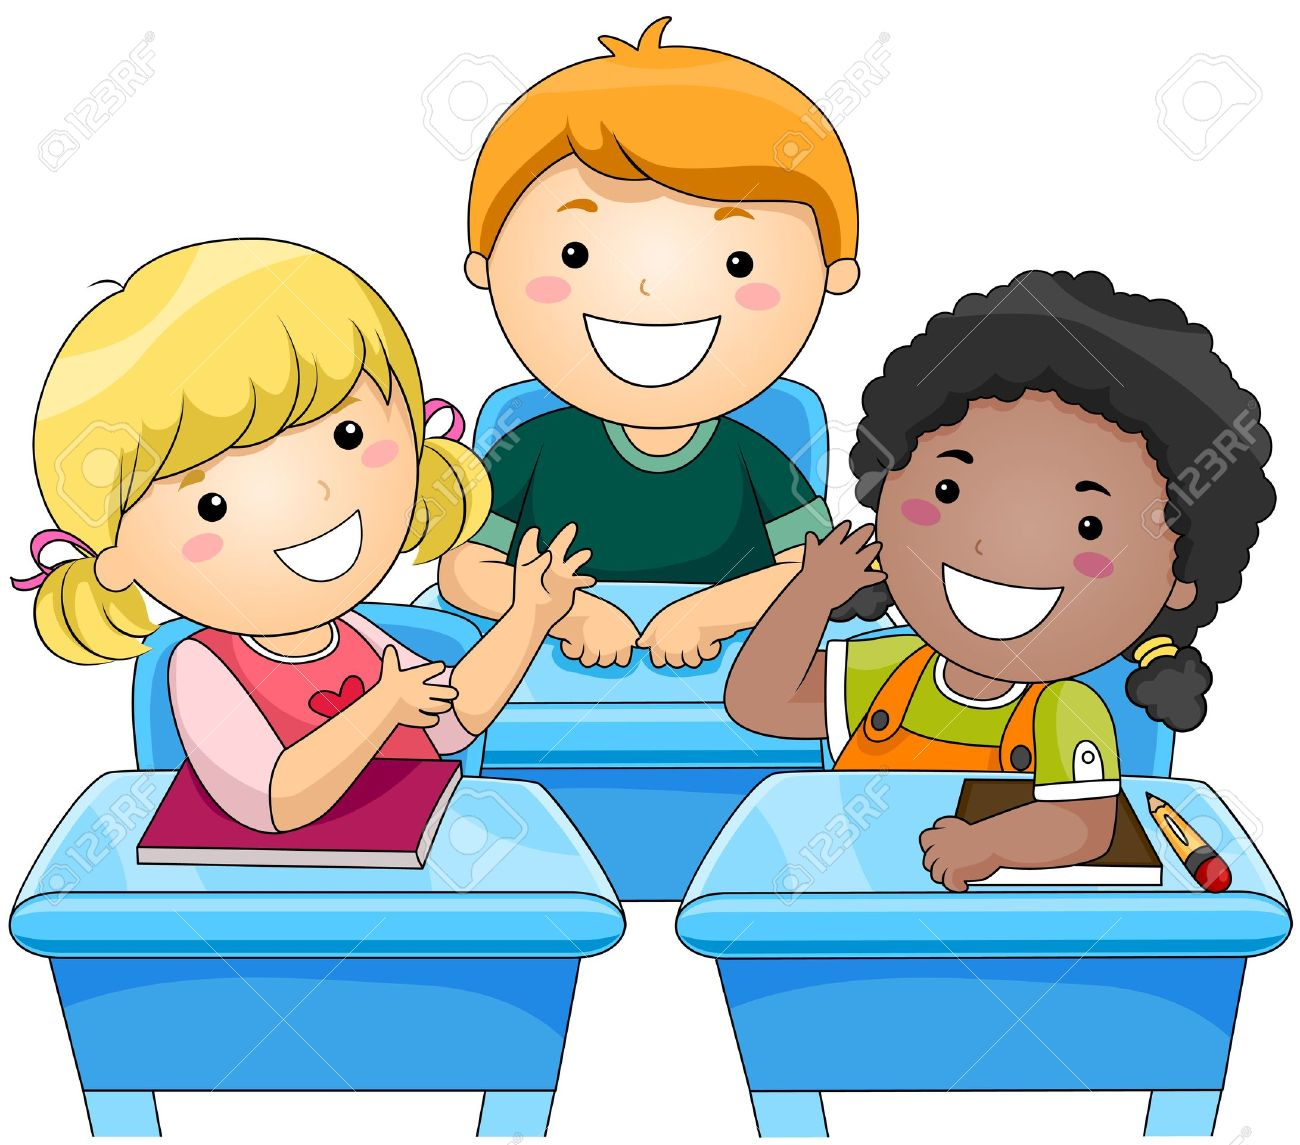 Children Talking In Classroom Clipart.